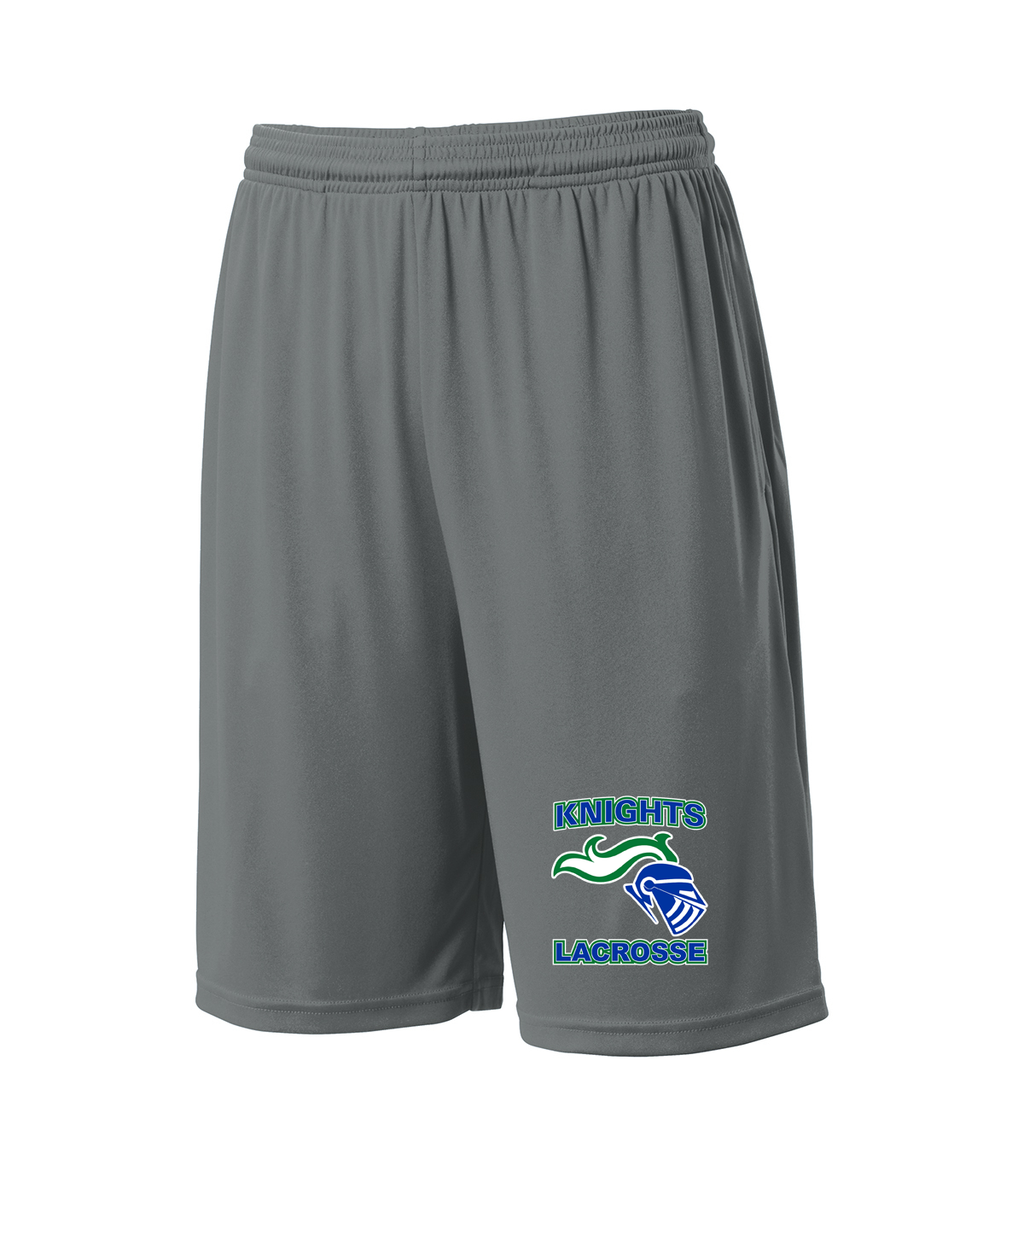 REQUIRED: Lake Norman Lacrosse Shorts